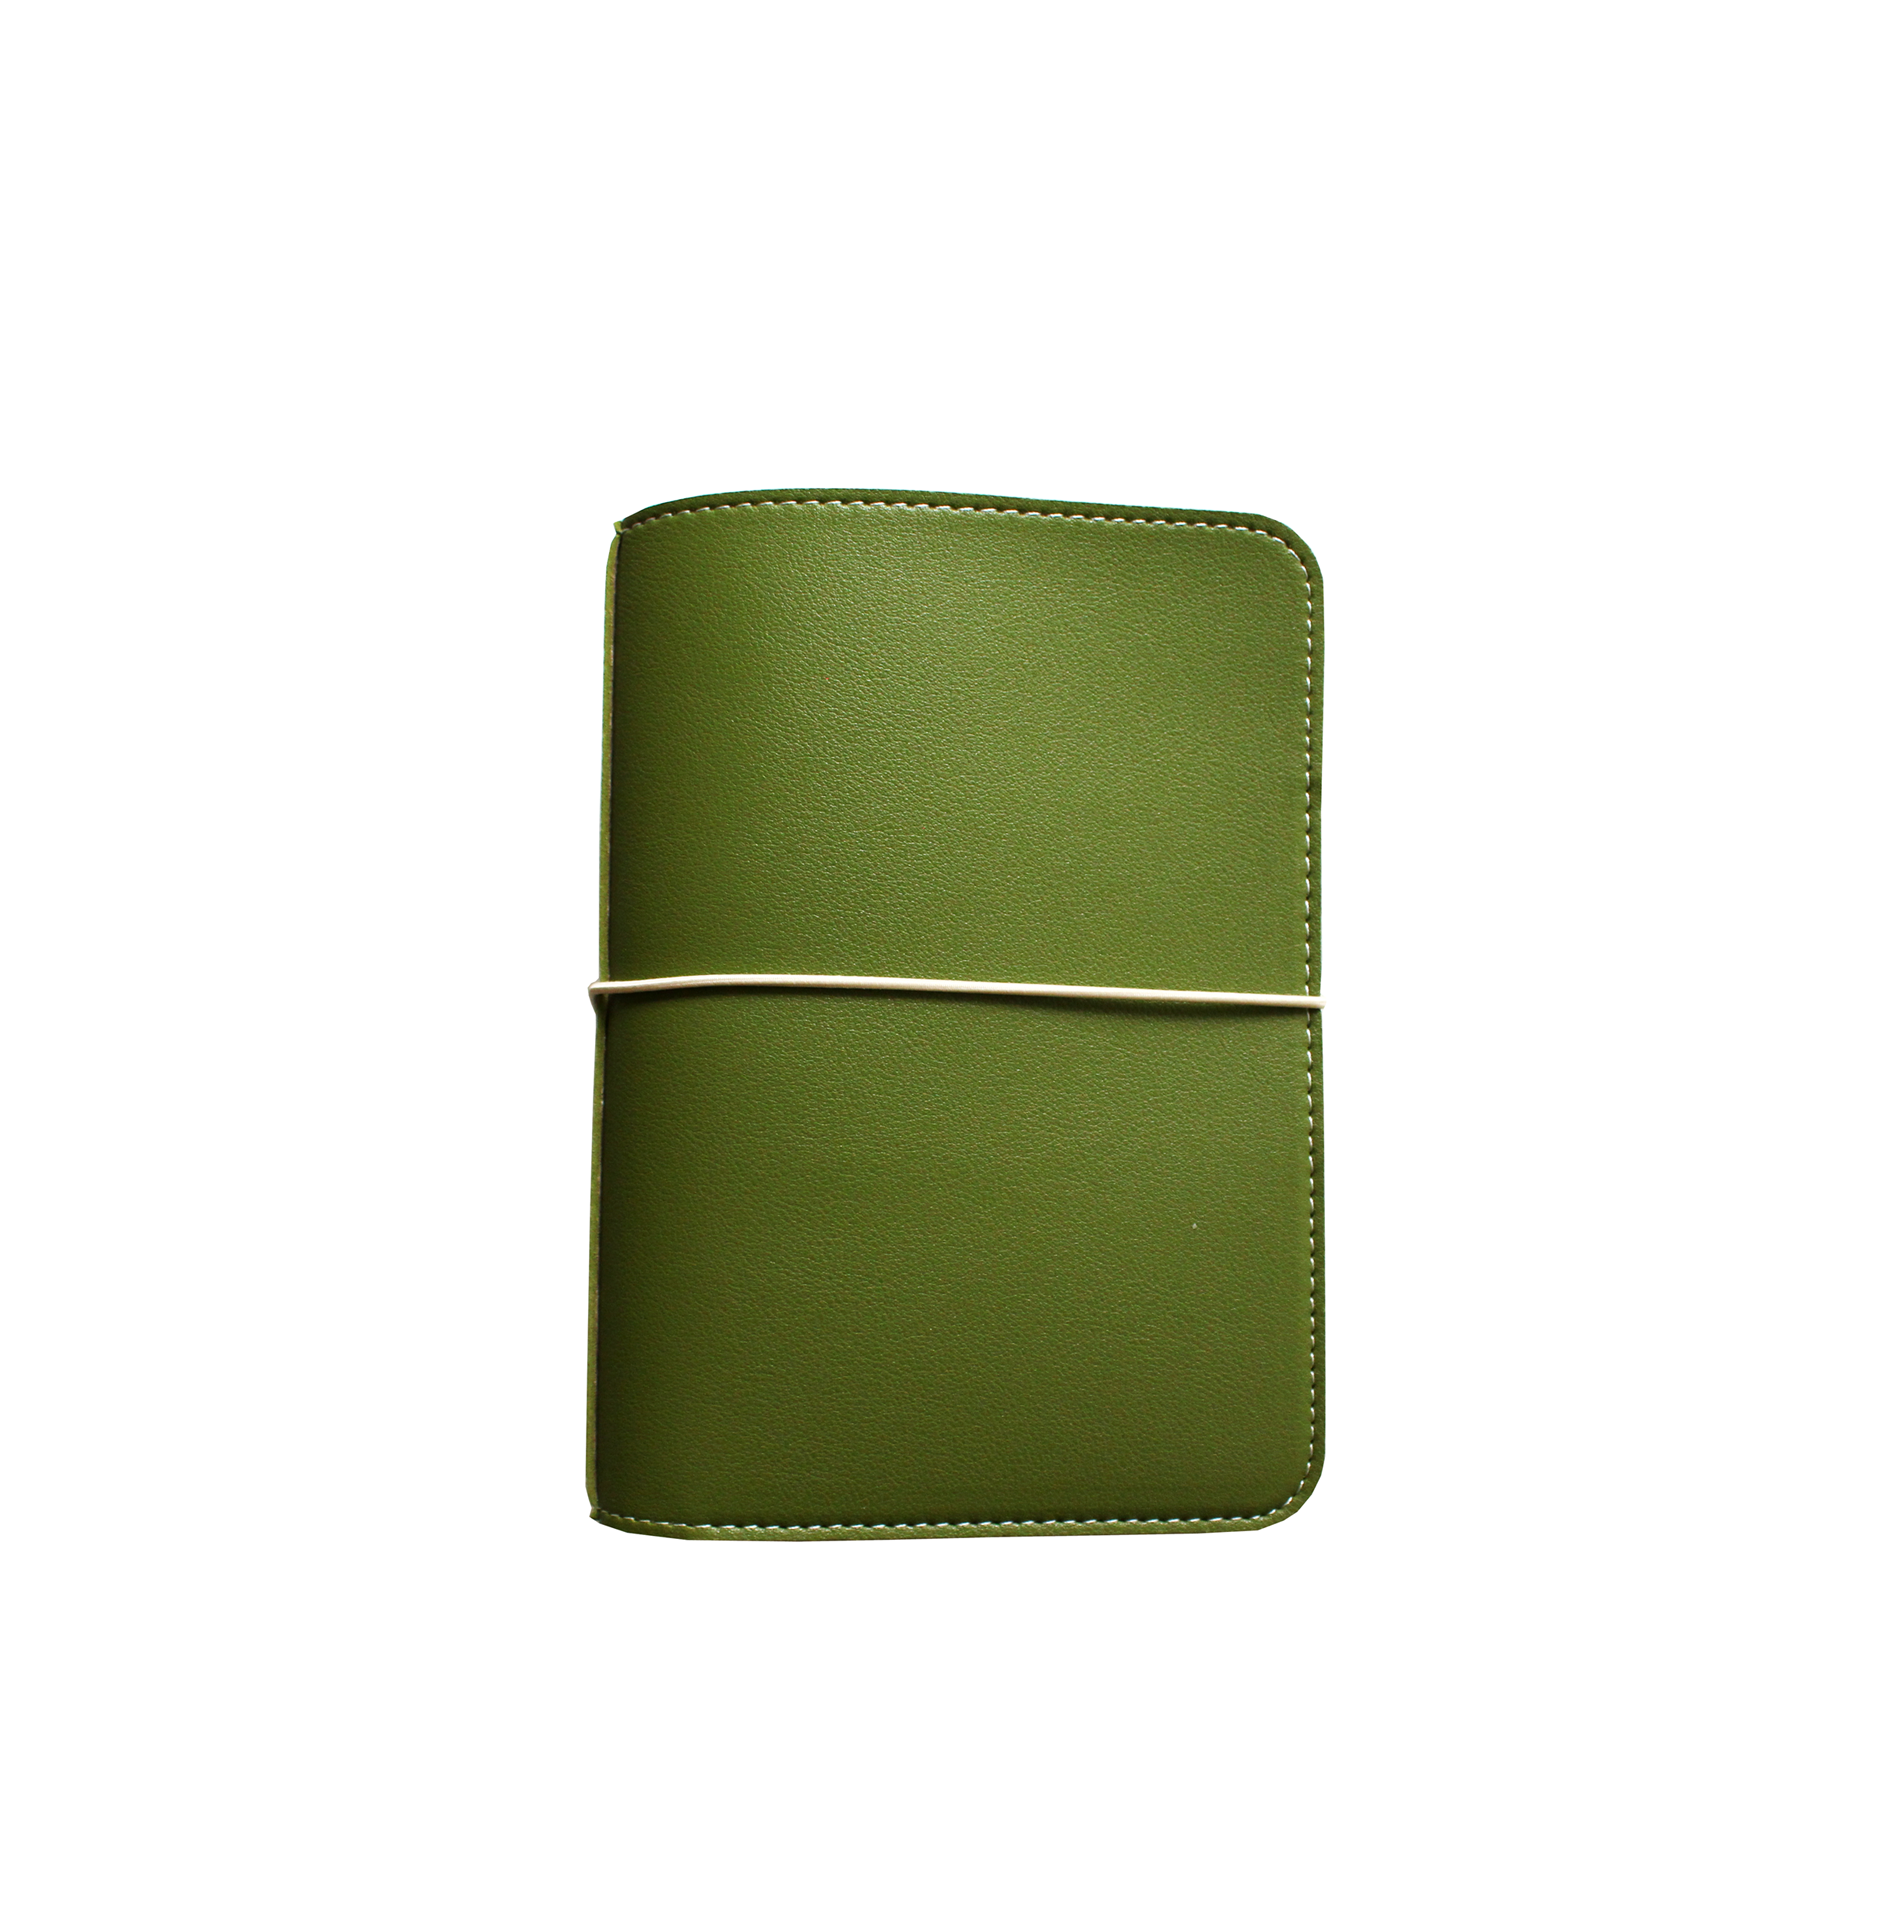 Perfect Fit B6 Travelers Notebook - Evergreen